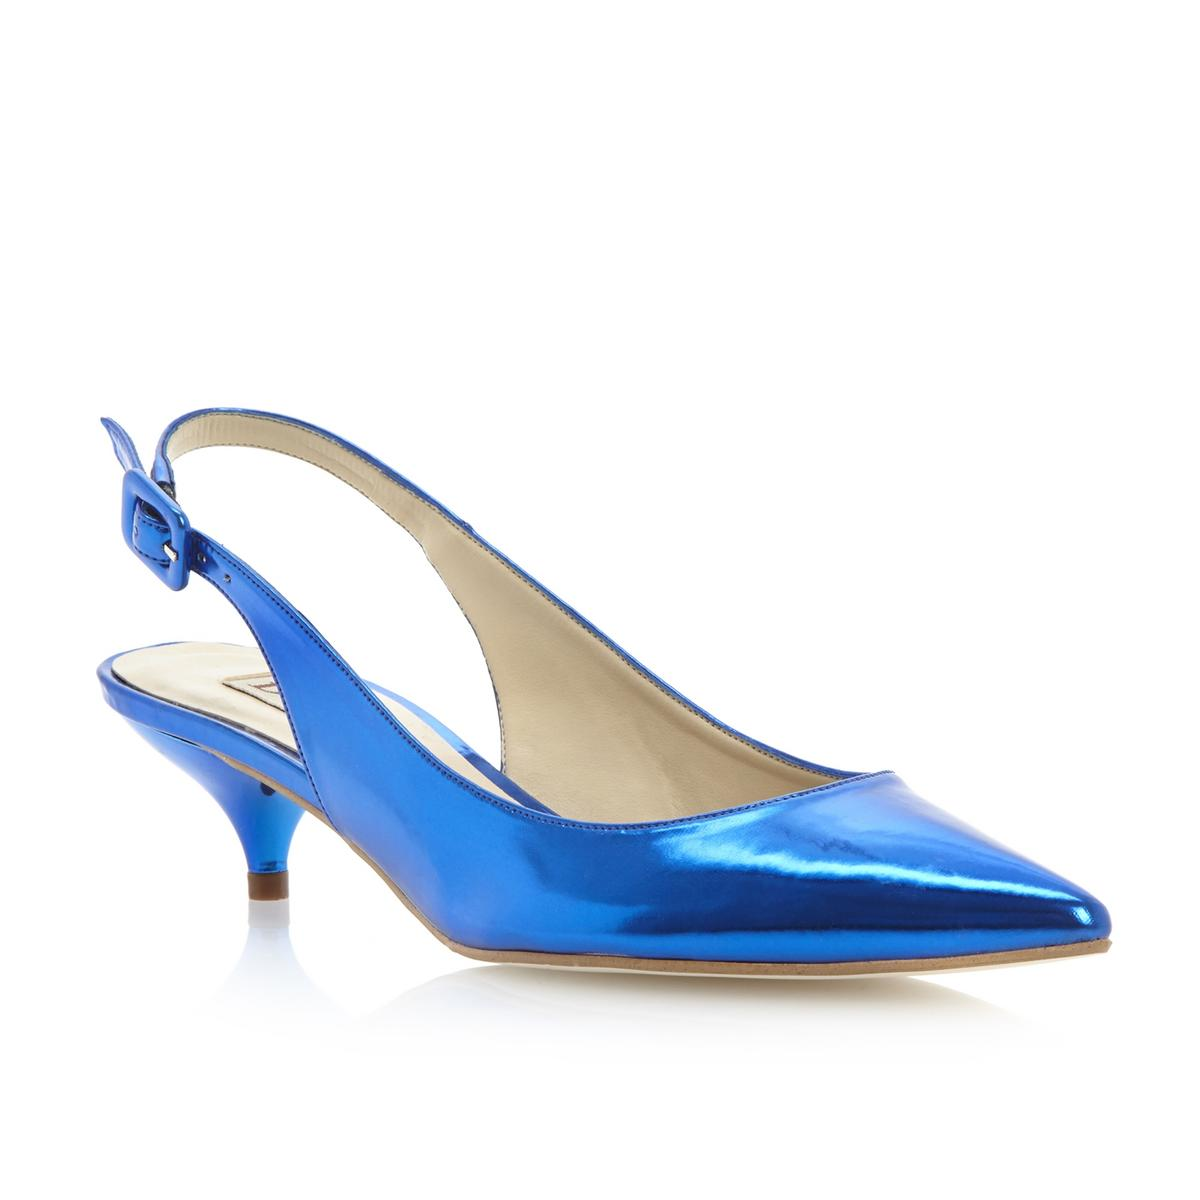 Explore our versatile range of blue shoes from brands like L.K. Bennett and Lotus. Our selection comes in all shades, from navy to pastel, and in styles as diverse as pumps, espadrilles and trainers. Fabryce by Anne Klein is a court shoe with kitten heel and patent toe cap. Show more. £ Product code: D Gabor Brunello Side.